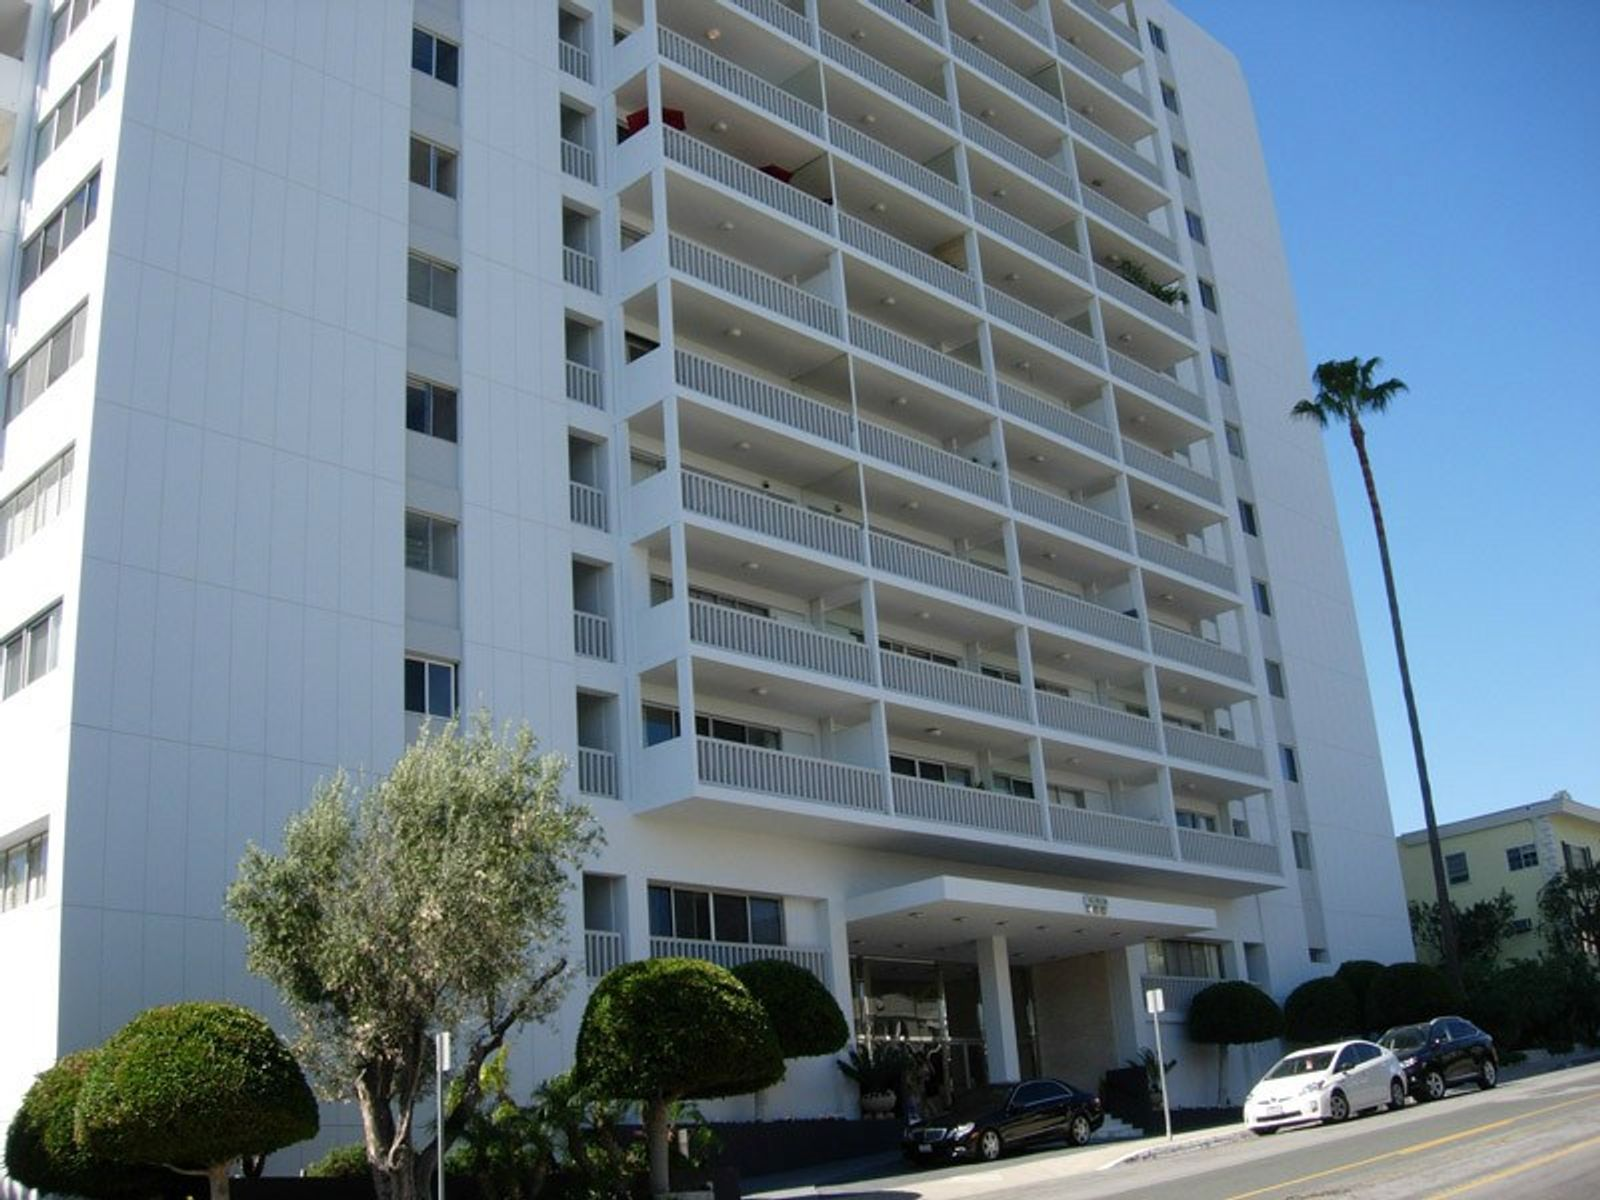 Live the Life of Luxury, West Hollywood CA Condominium - Los Angeles Real Estate